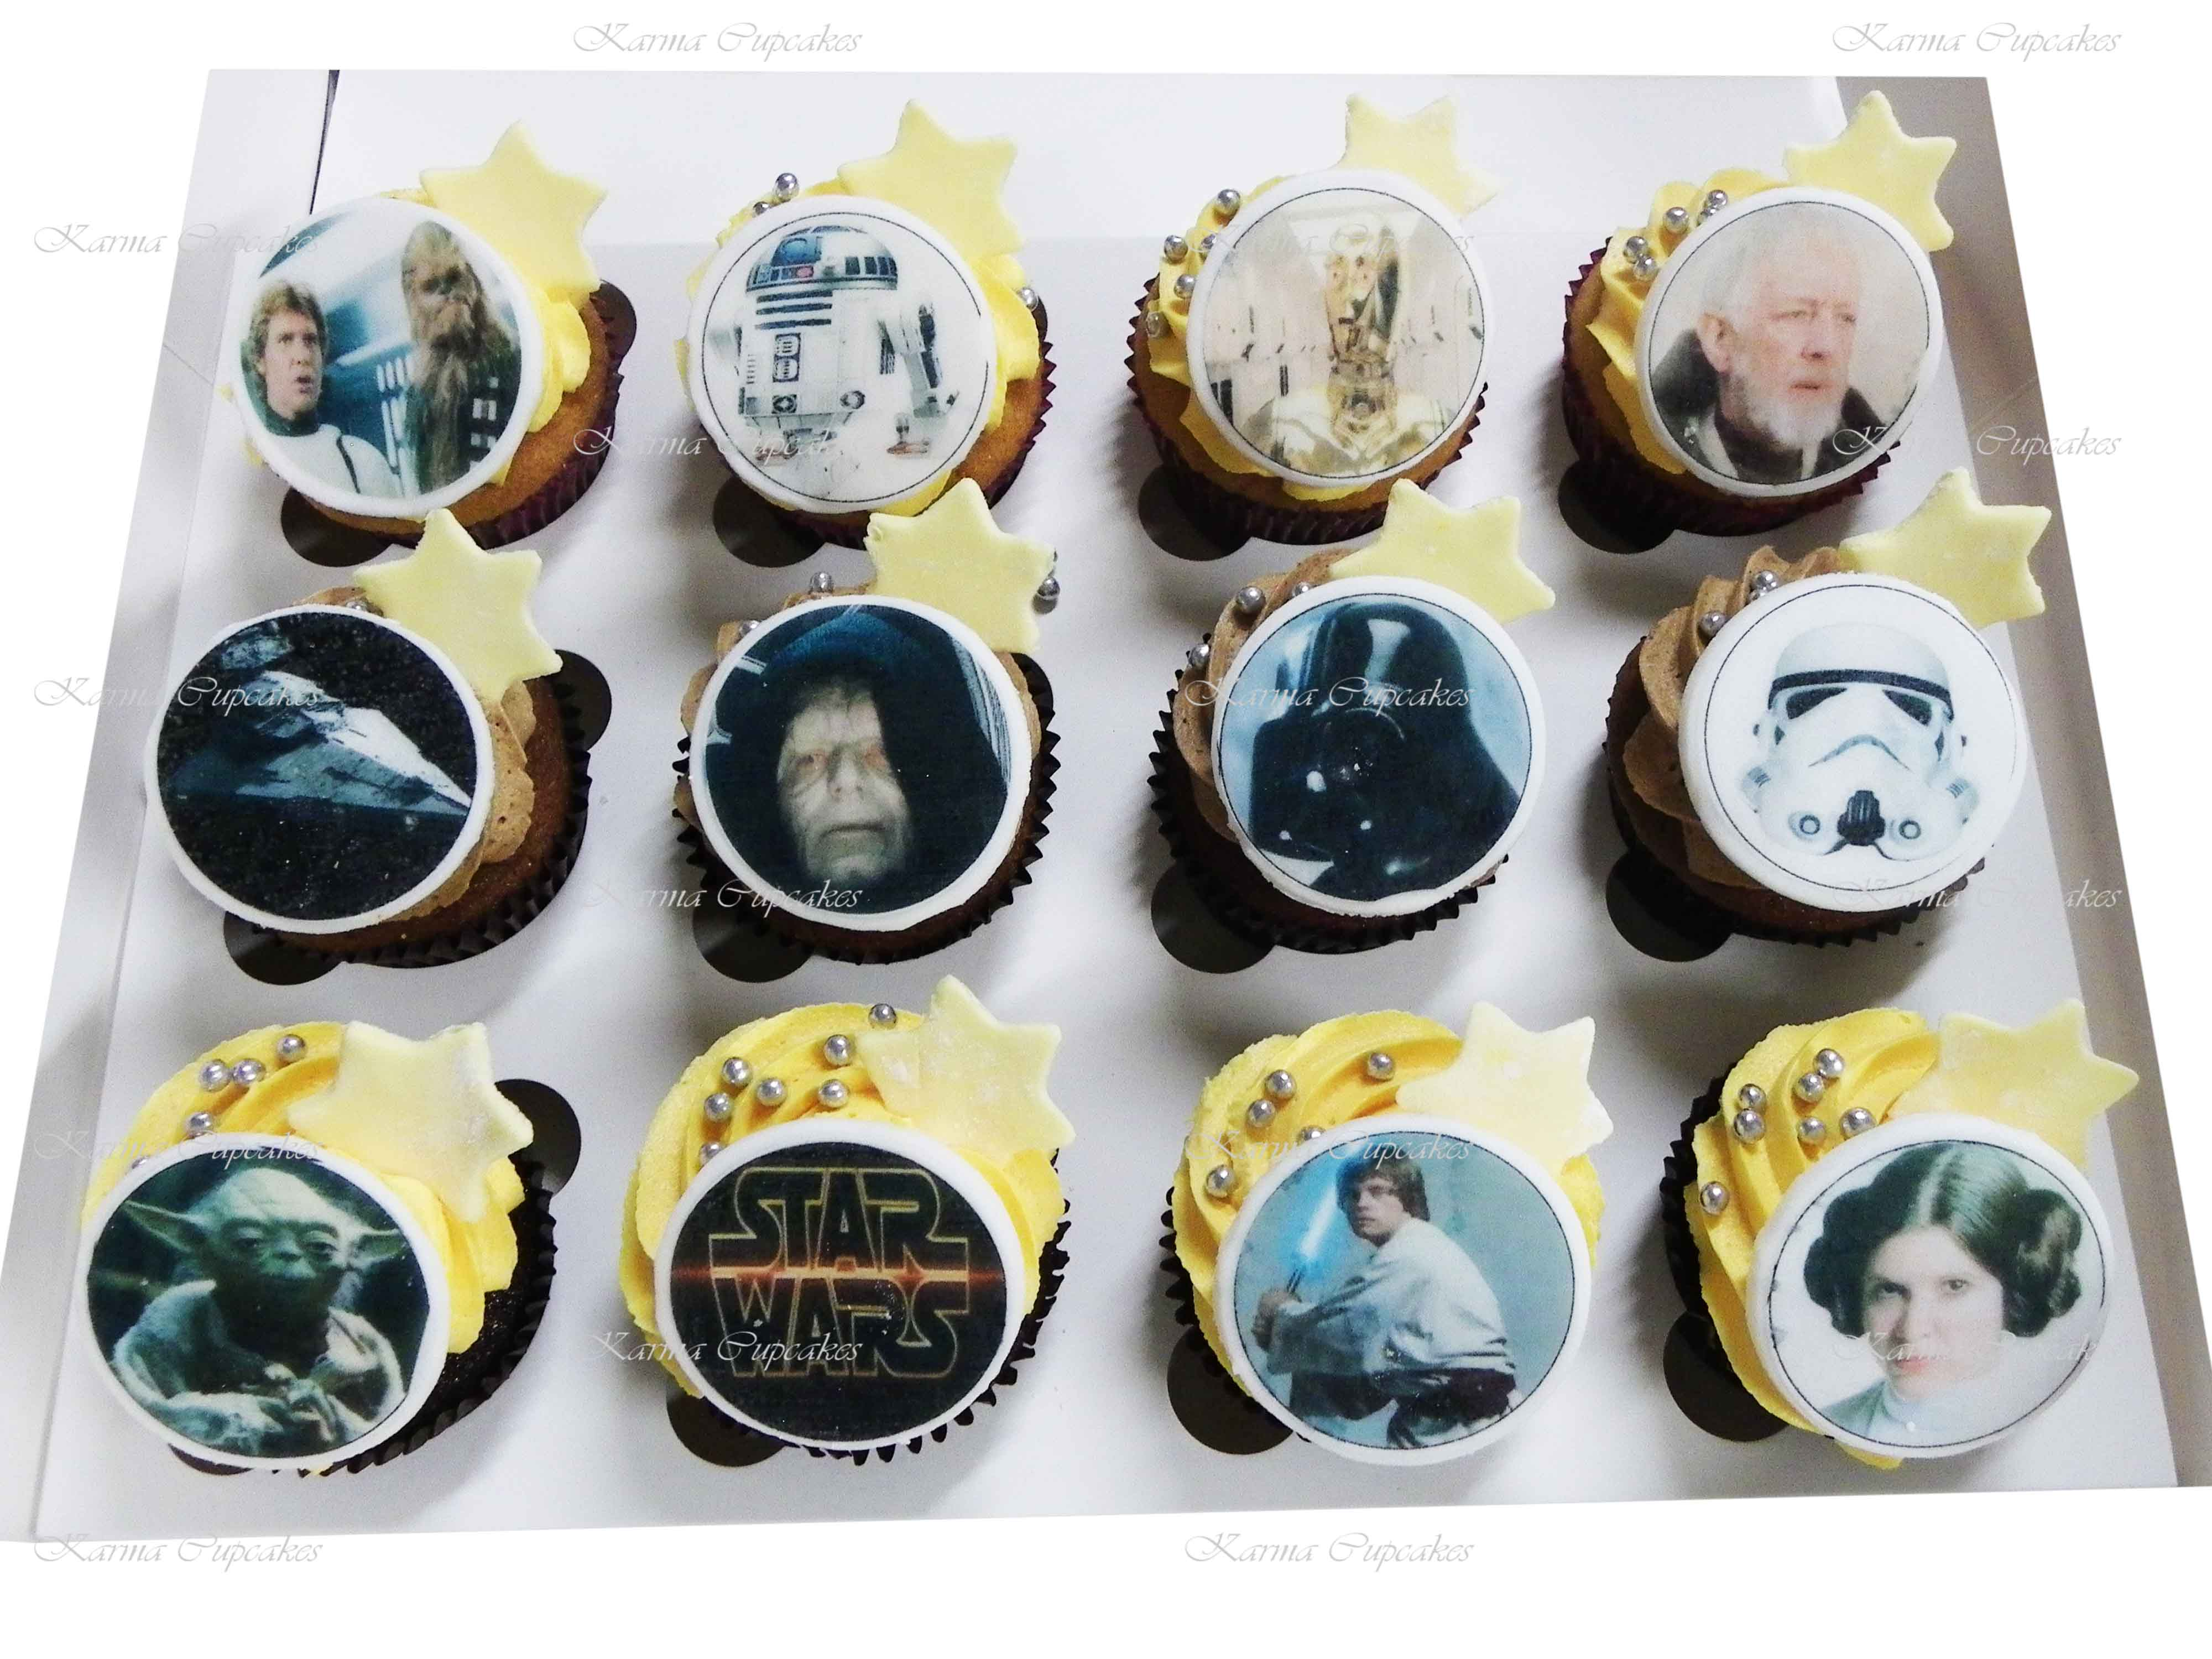 Tremendous 12 Star Wars Cupcakes With Edible Images Of Your Favourite Characters Funny Birthday Cards Online Overcheapnameinfo